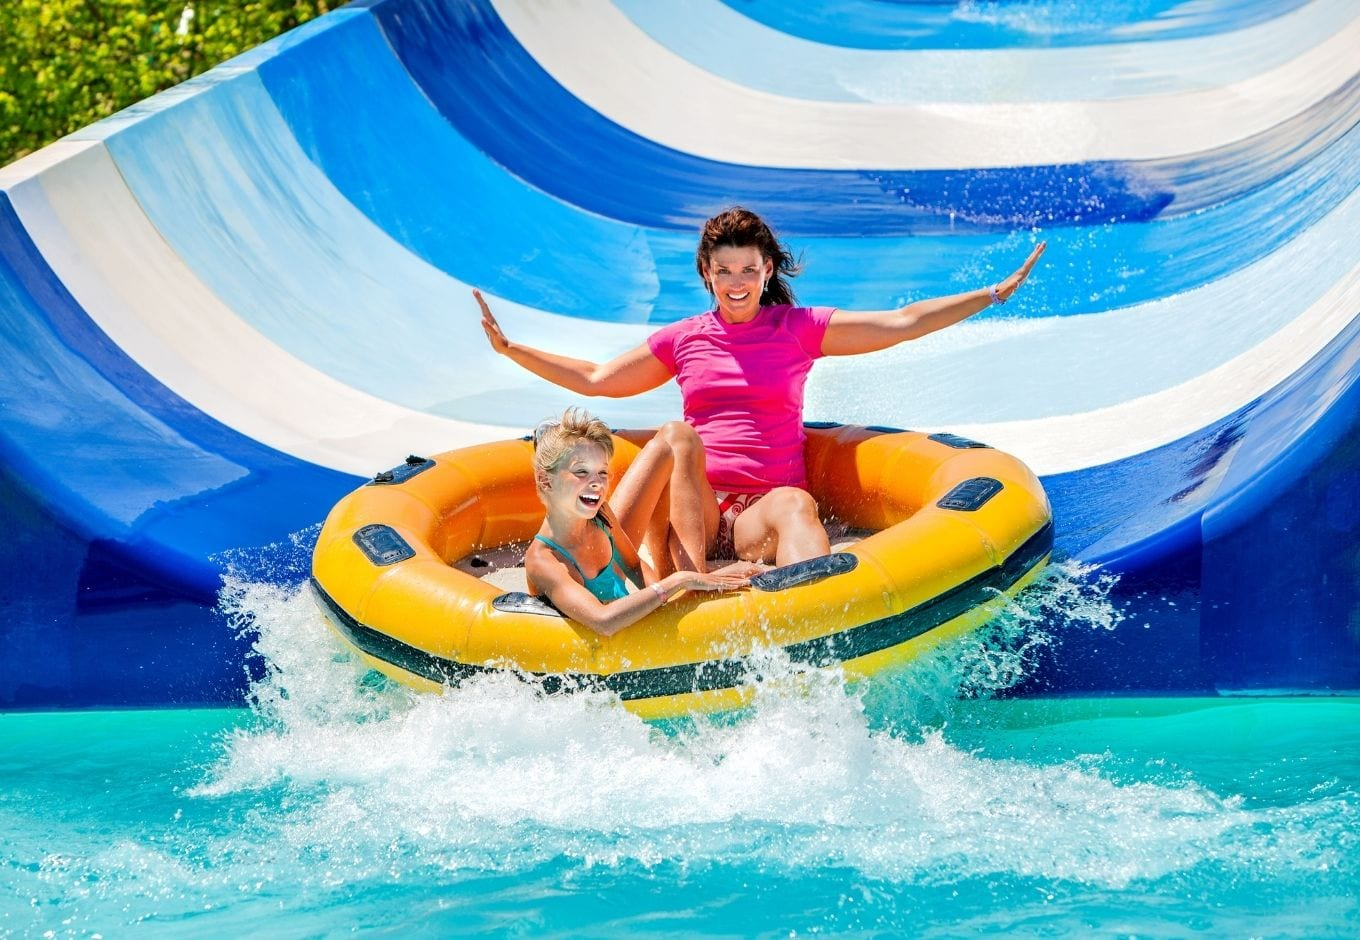 Mom and daughter having fun o a waterslide.